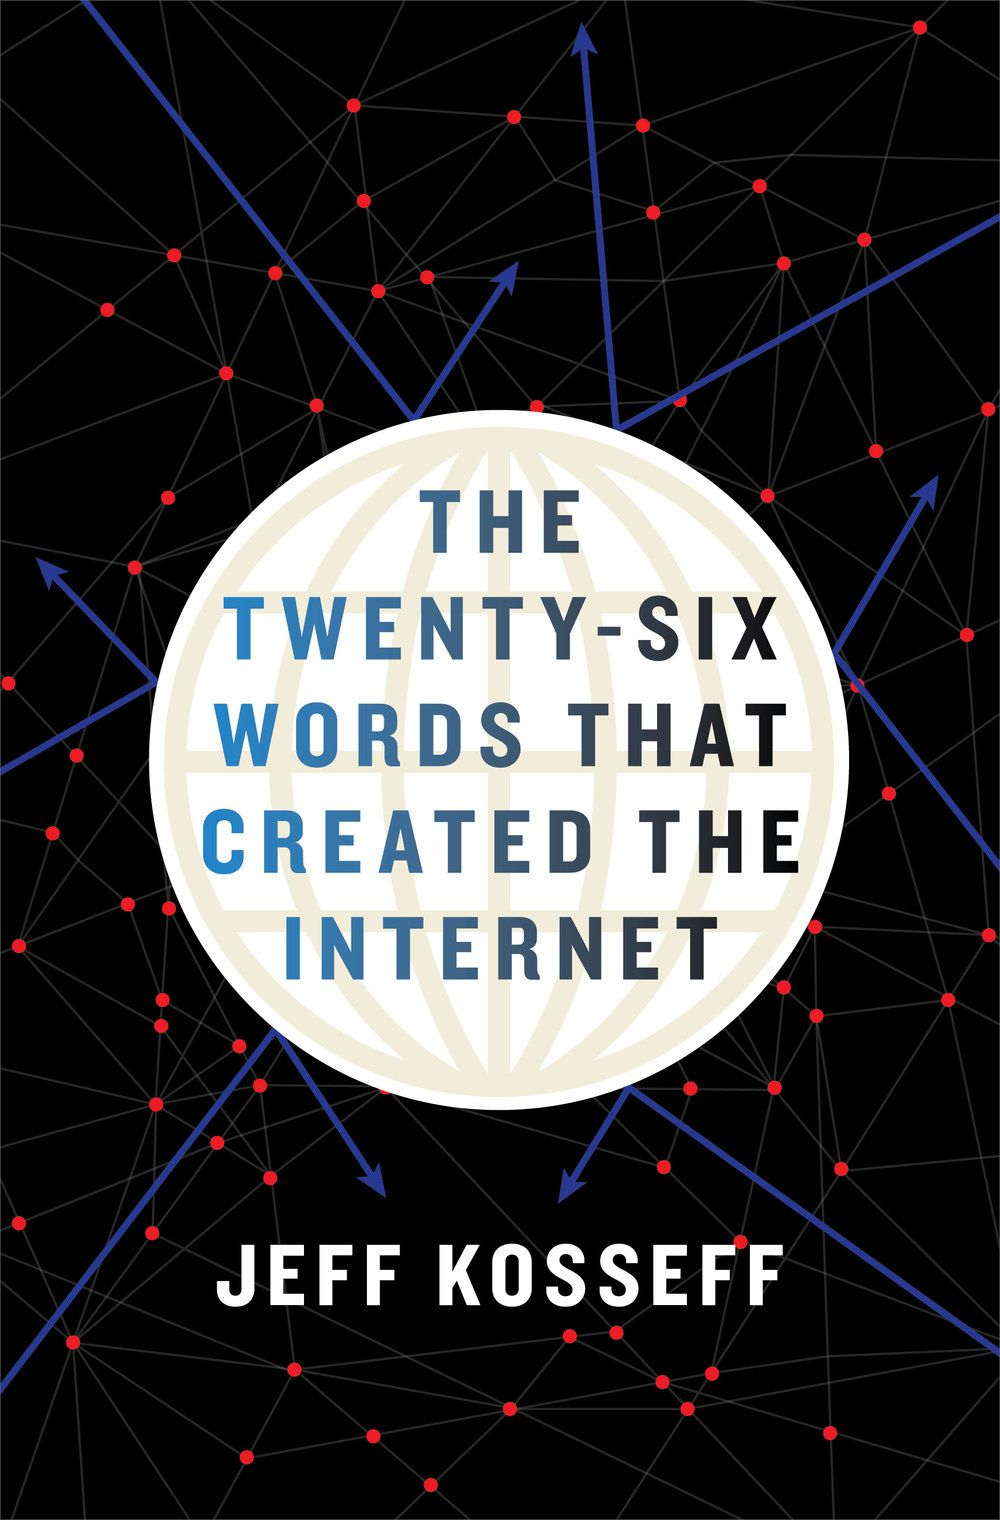 Book Cover: The Twenty-Six Words That Created The Internet